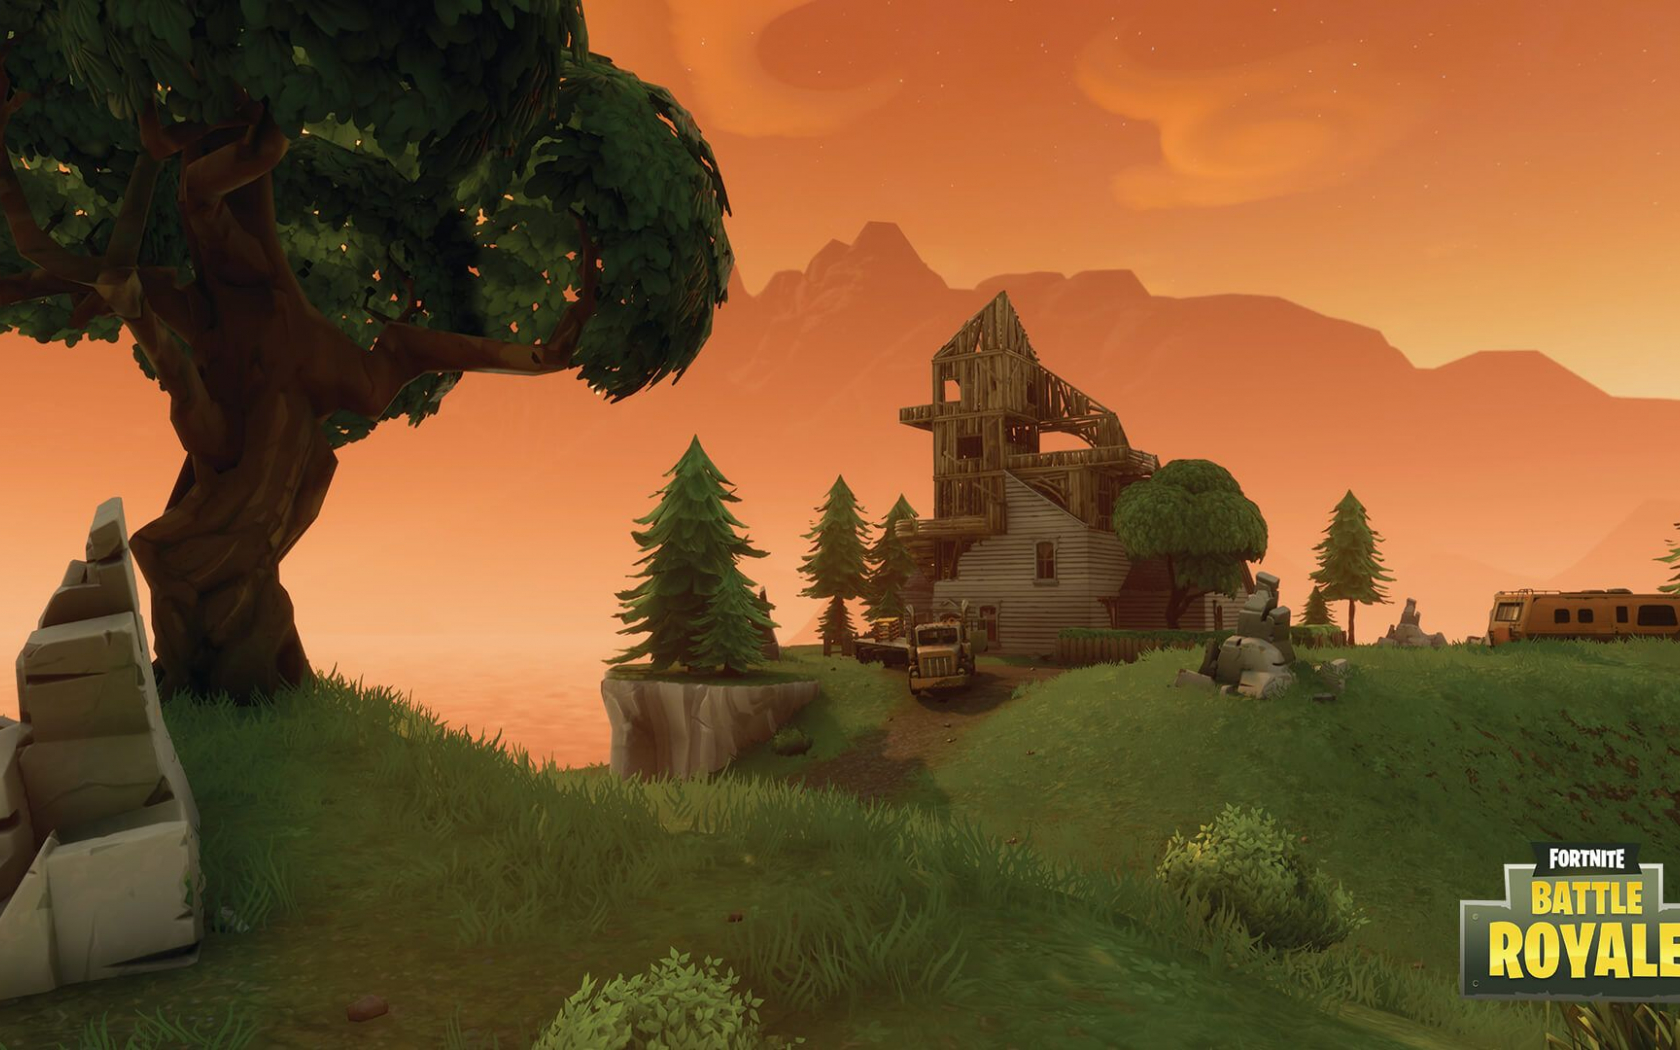 Free Download Fortnite Hd Wallpapers And Background Images Stmednet 1920x1080 For Your Desktop Mobile Tablet Explore 26 Fortnite Hd Wallpapers Fortnite Hd Wallpapers Fortnite 4k Hd Wallpapers Fortnite Wallpapers